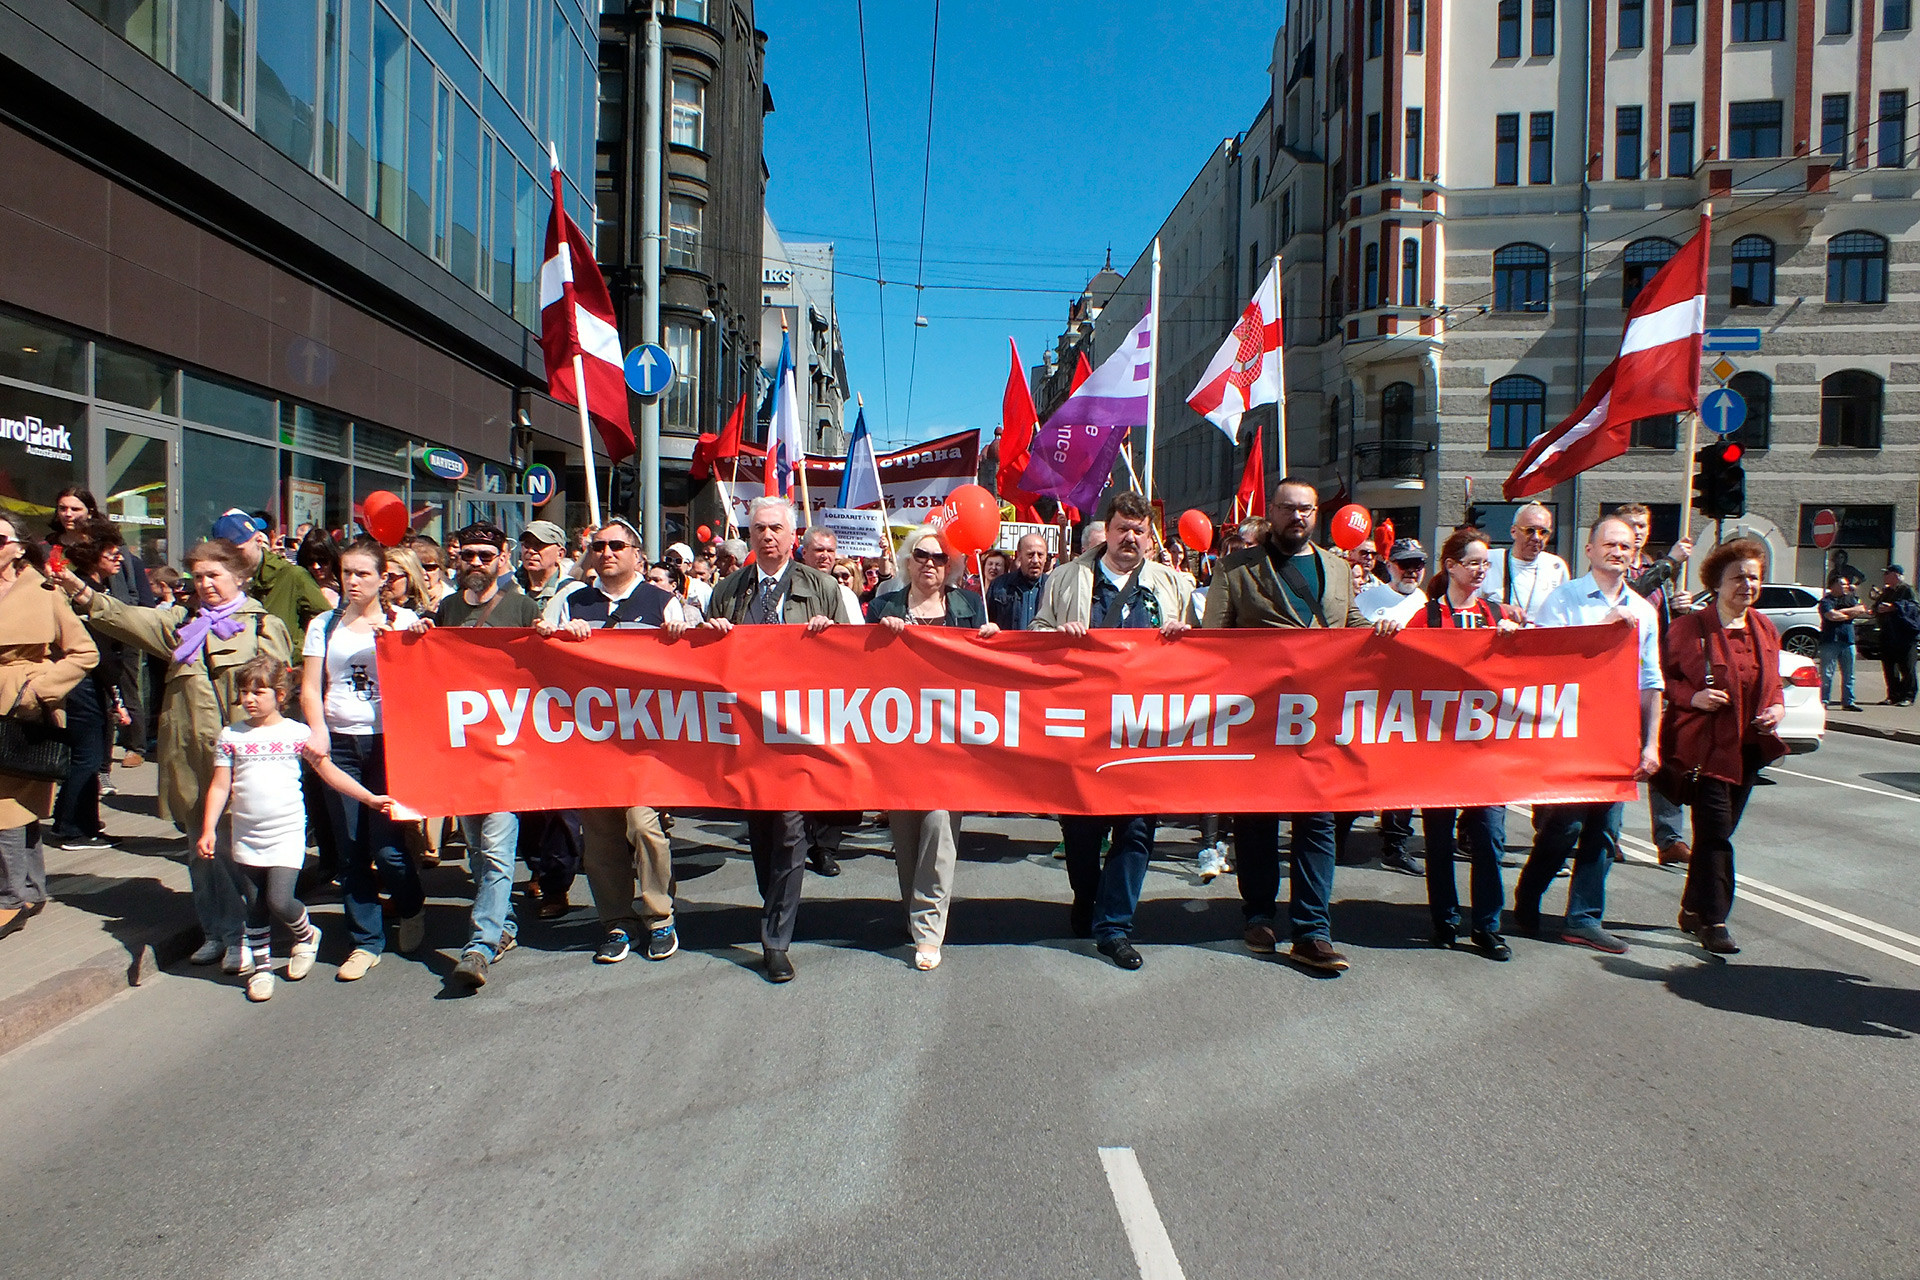 Participants of the rally in Riga (May 1, 2018) oppose the full translation of school education into Latvian and the